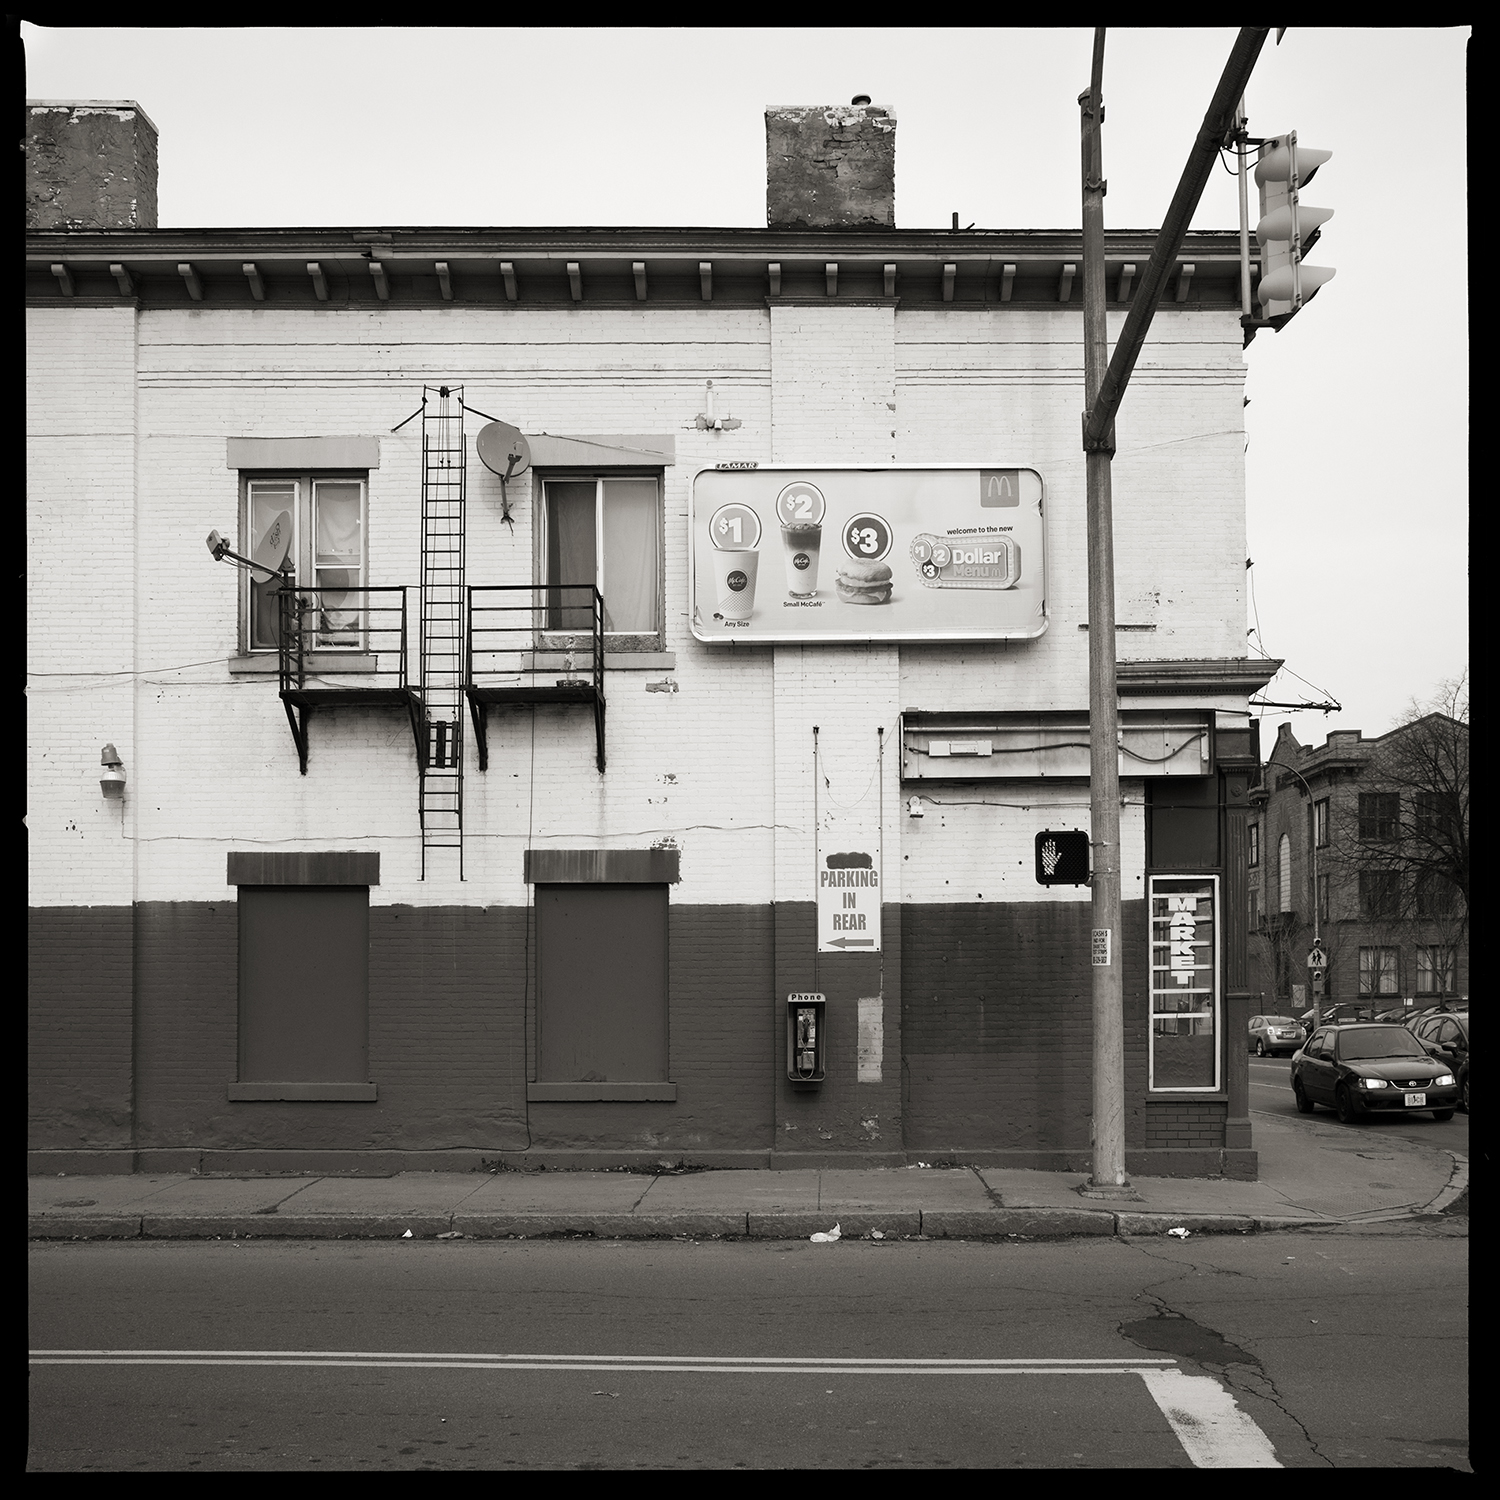 An image from Eric Kunsman's series Felicific